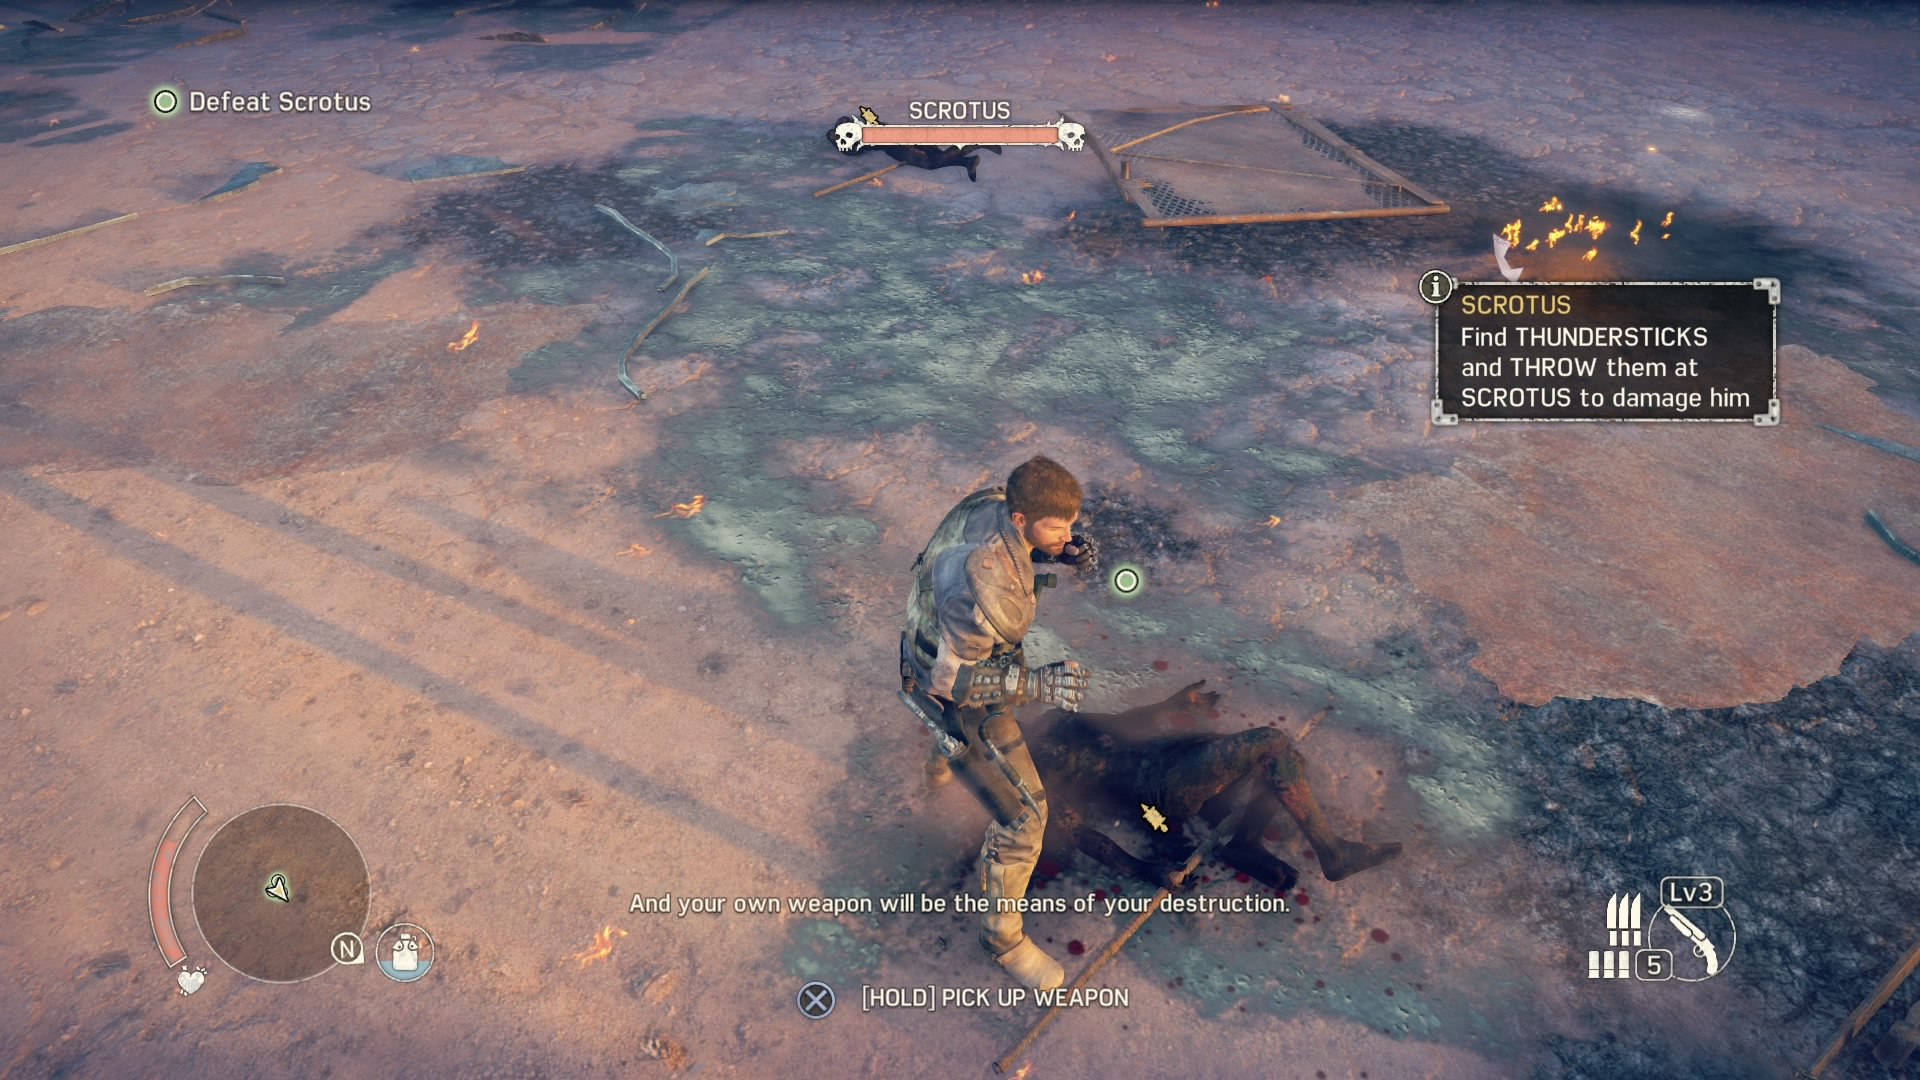 Mad Max Walkthrough - In It for Glory and Paint My Name in ... Mad Max Game Map on battlefield 4 game map, the hunger games game map, grand theft auto game map, wasteland 2 game map, forza horizon 2 game map, far cry 4 game map, thief game map, dead island game map, assassin's creed unity game map, the dark knight rises game map,